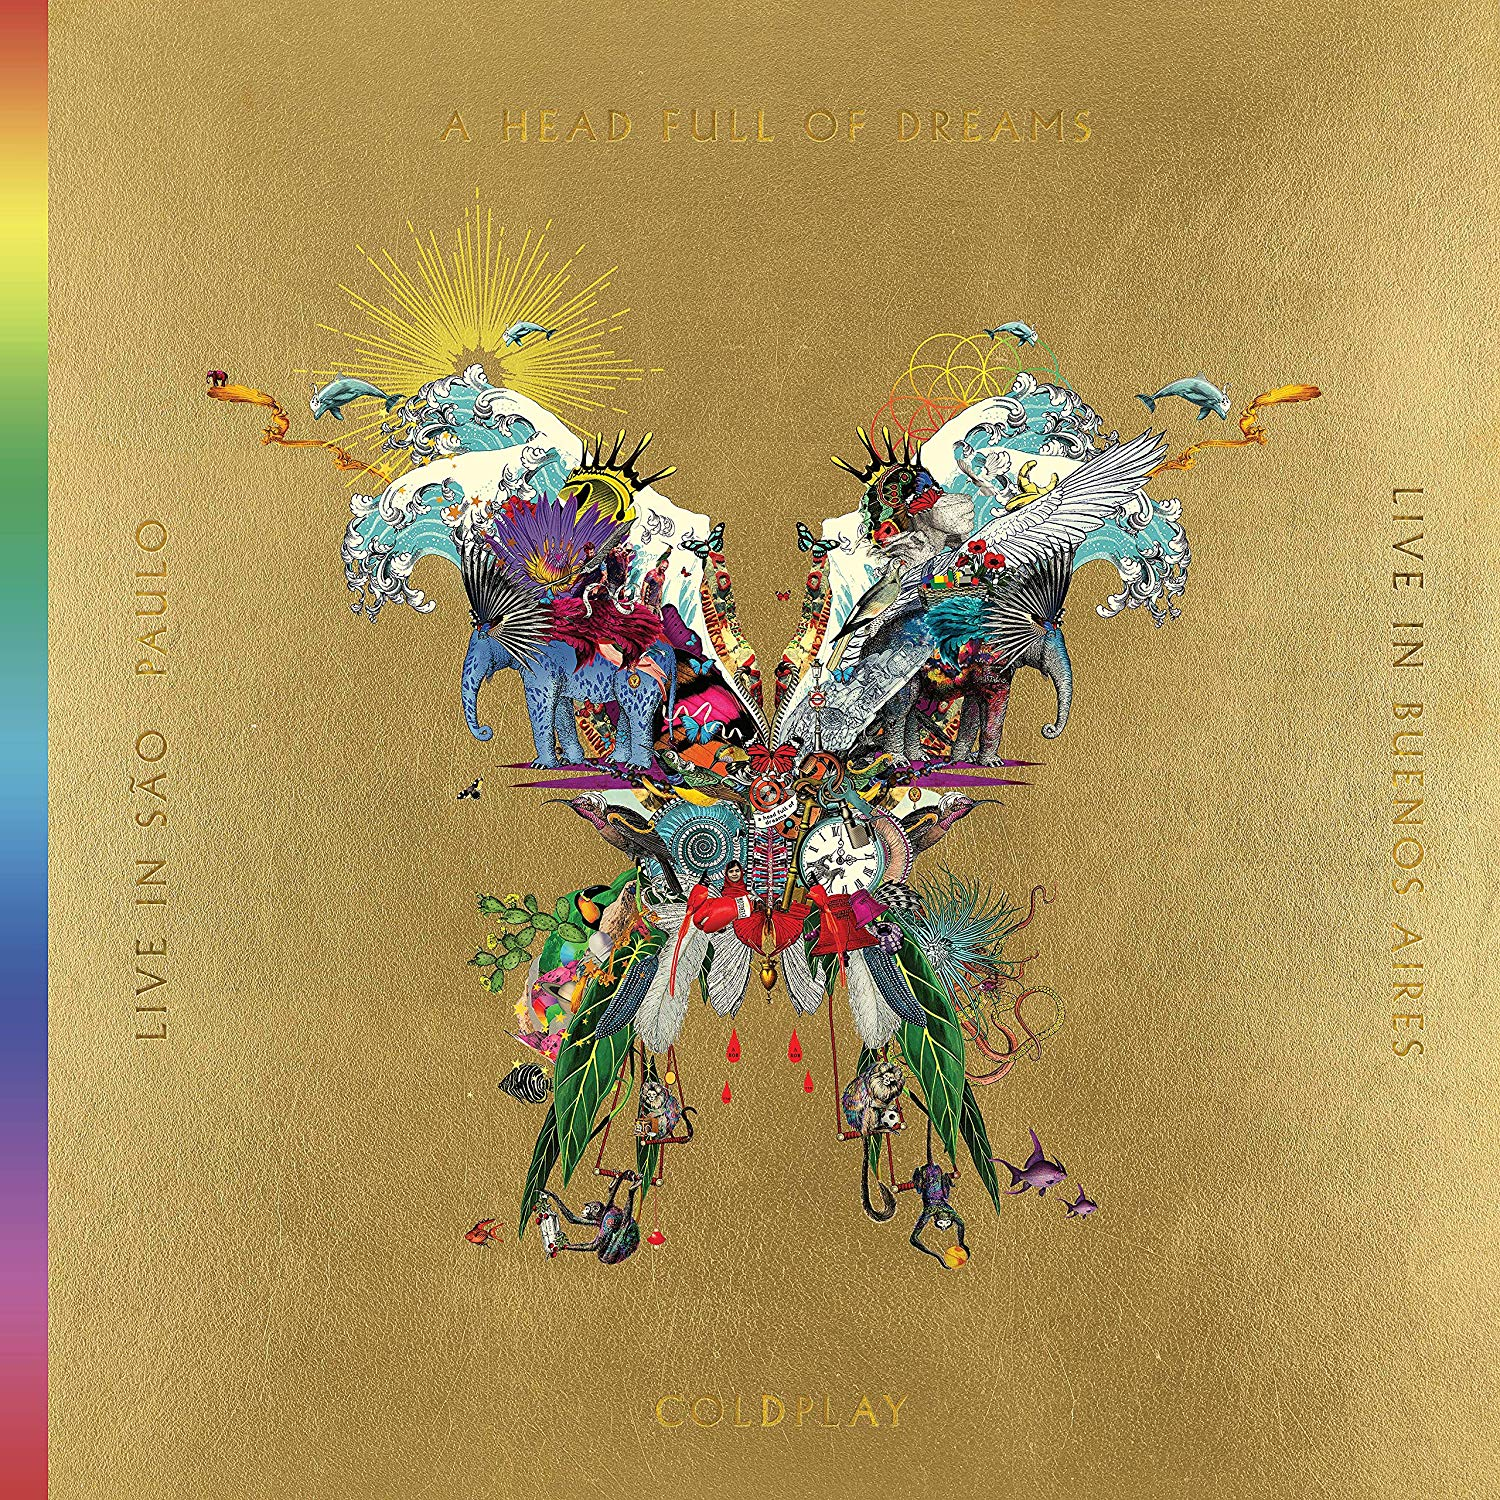 Coldplay - Live In Buenos Aires Gold